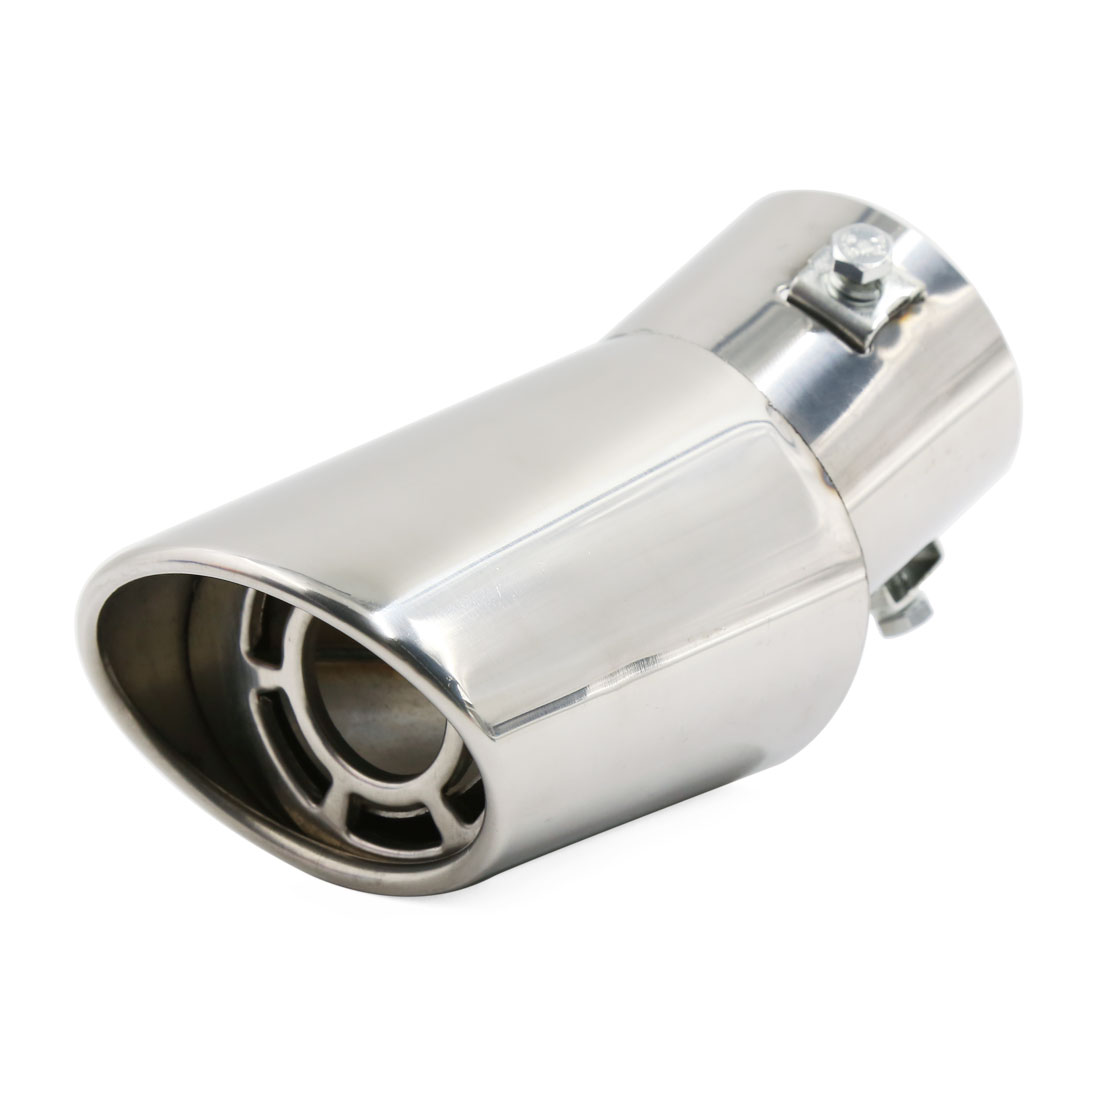 Universal Stainless Steel Curved Car Rear Exhaust Muffler Tail Pipe Trim Tip